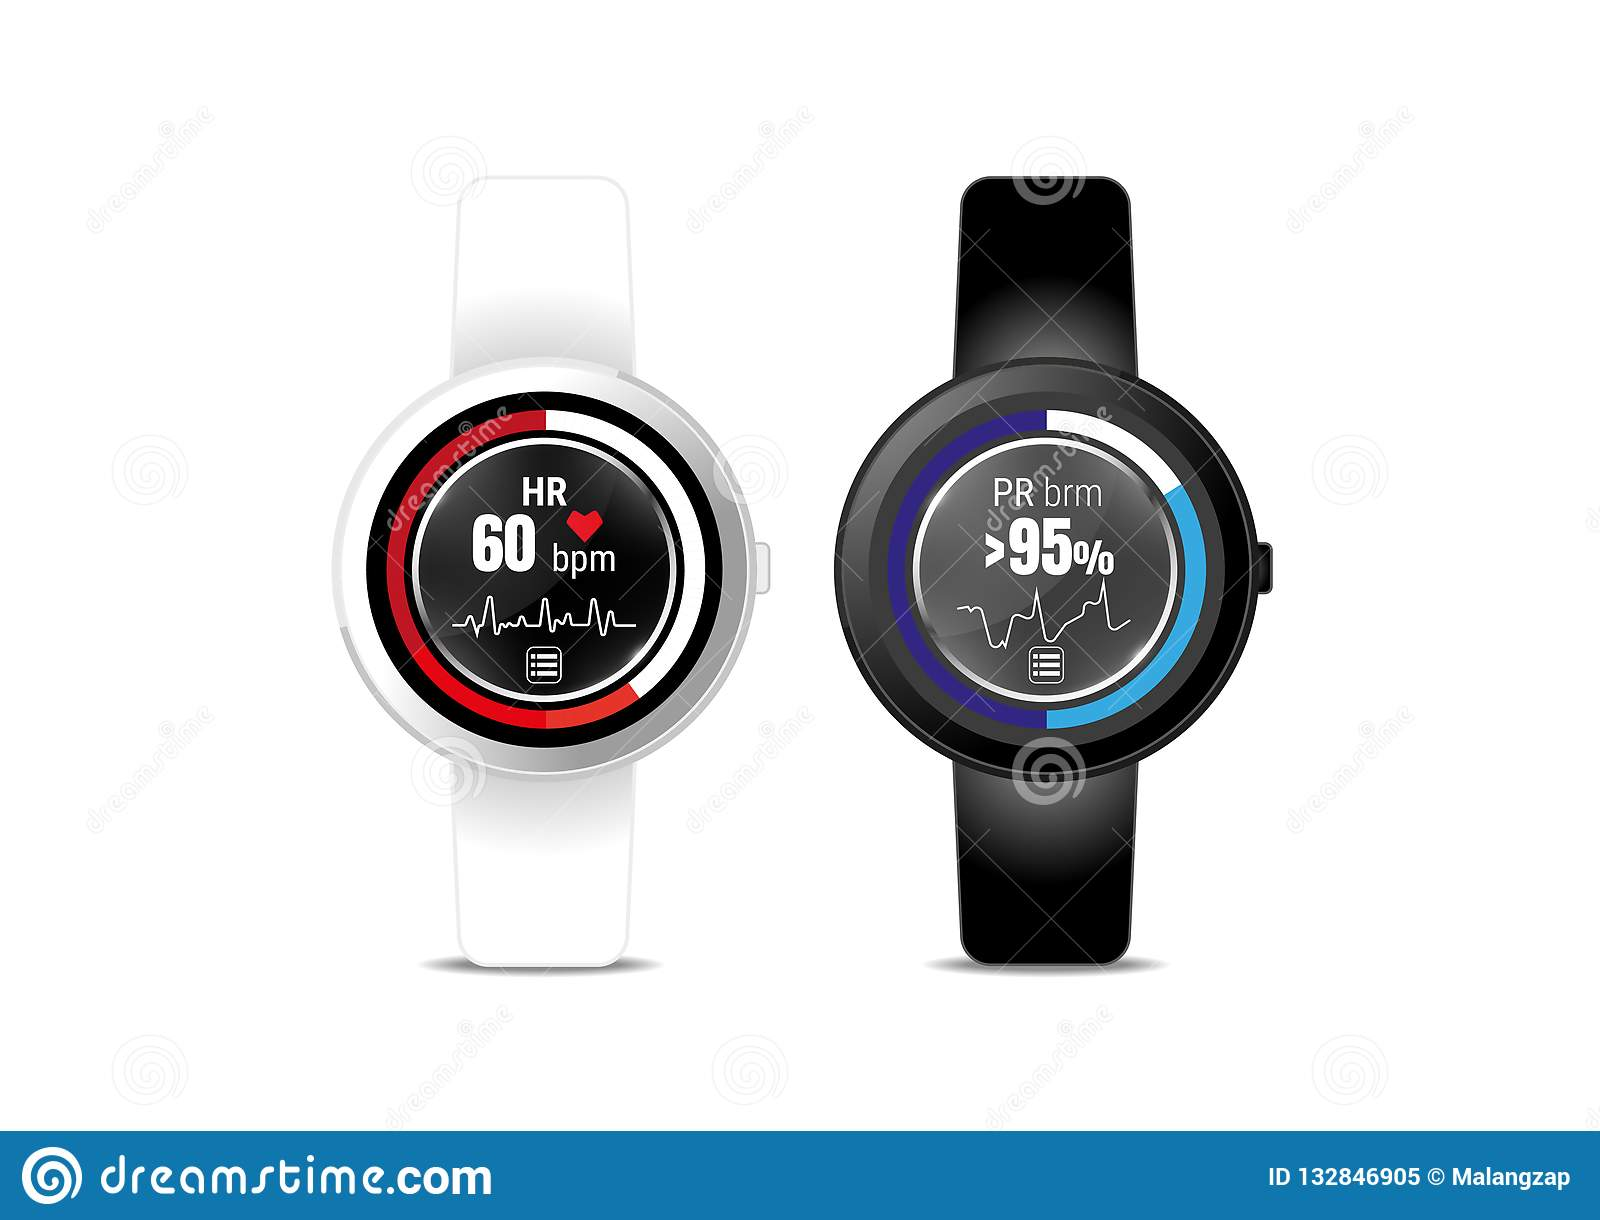 Heart rate application display on smartwatch